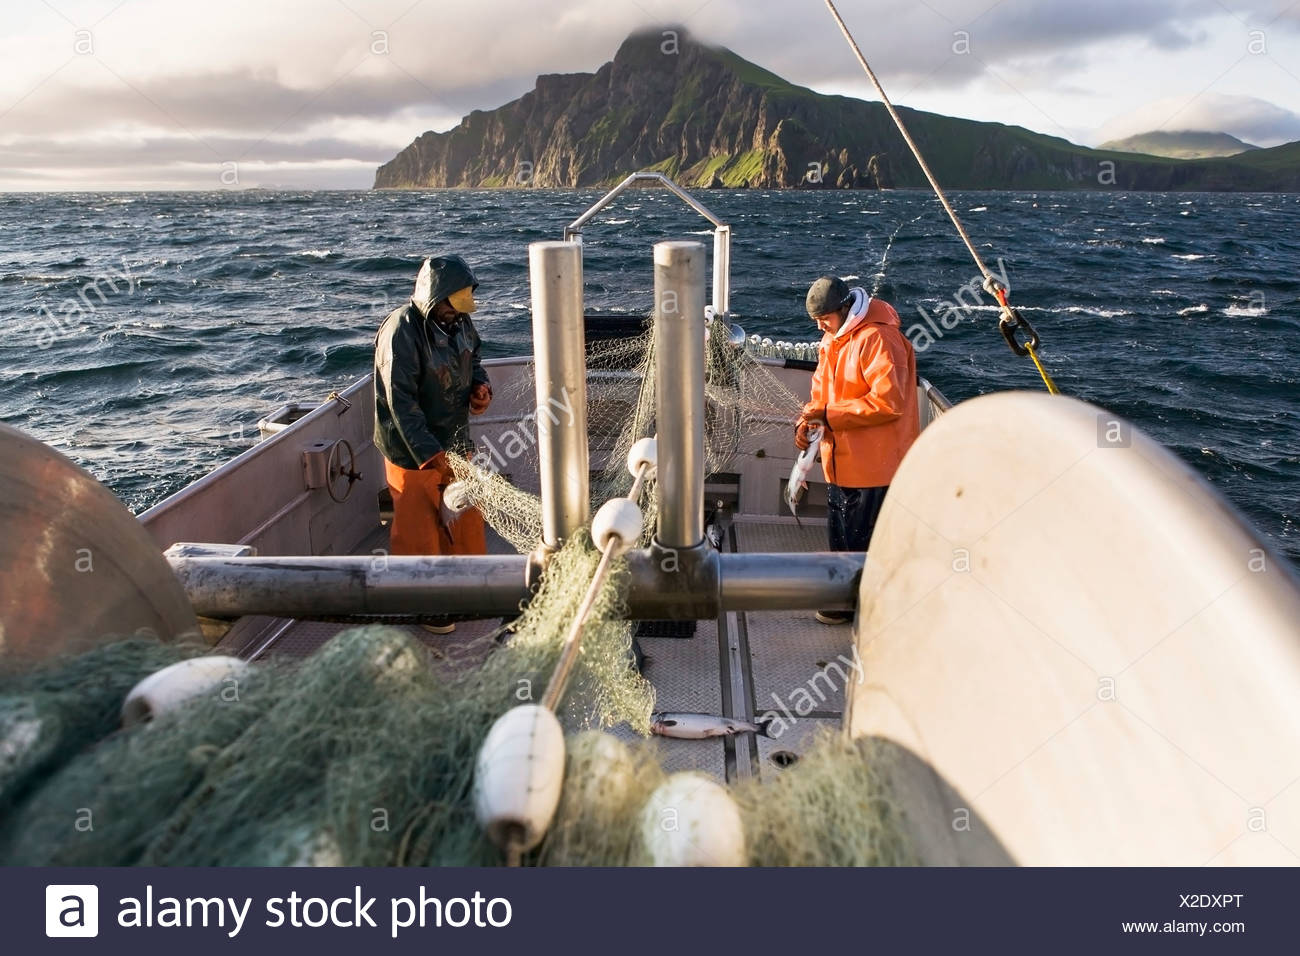 Commercial gill net fishing boats stock photos for Alaska department of fish and game